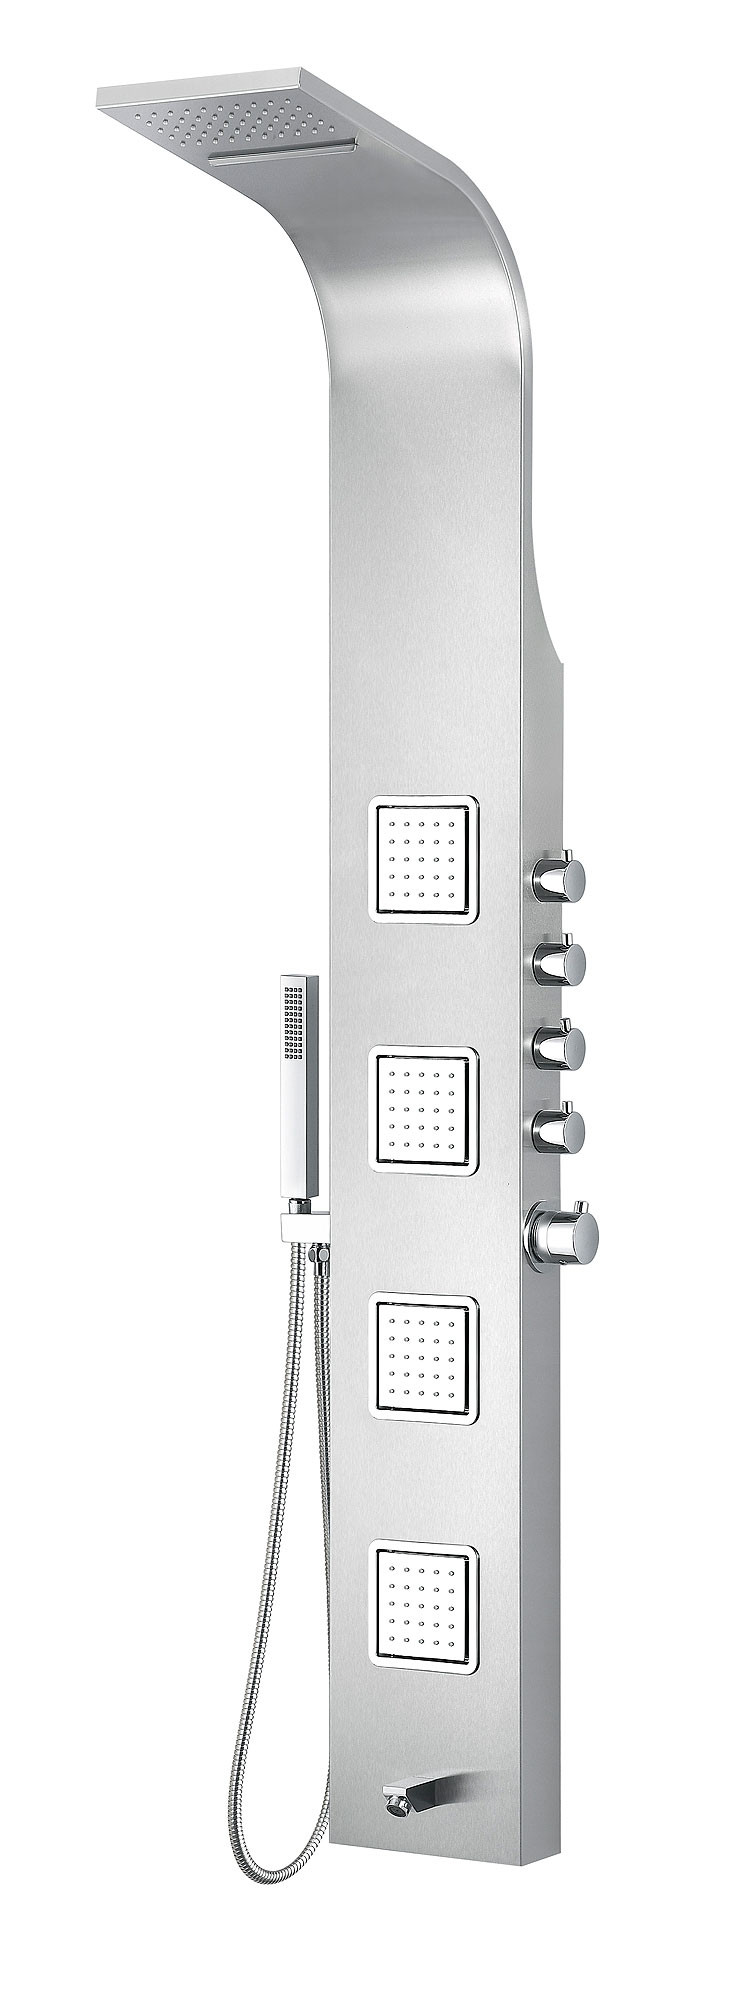 ANZZI SP-AZ043 Mesa Wall Mount Panel System In Brushed Stainless Steel